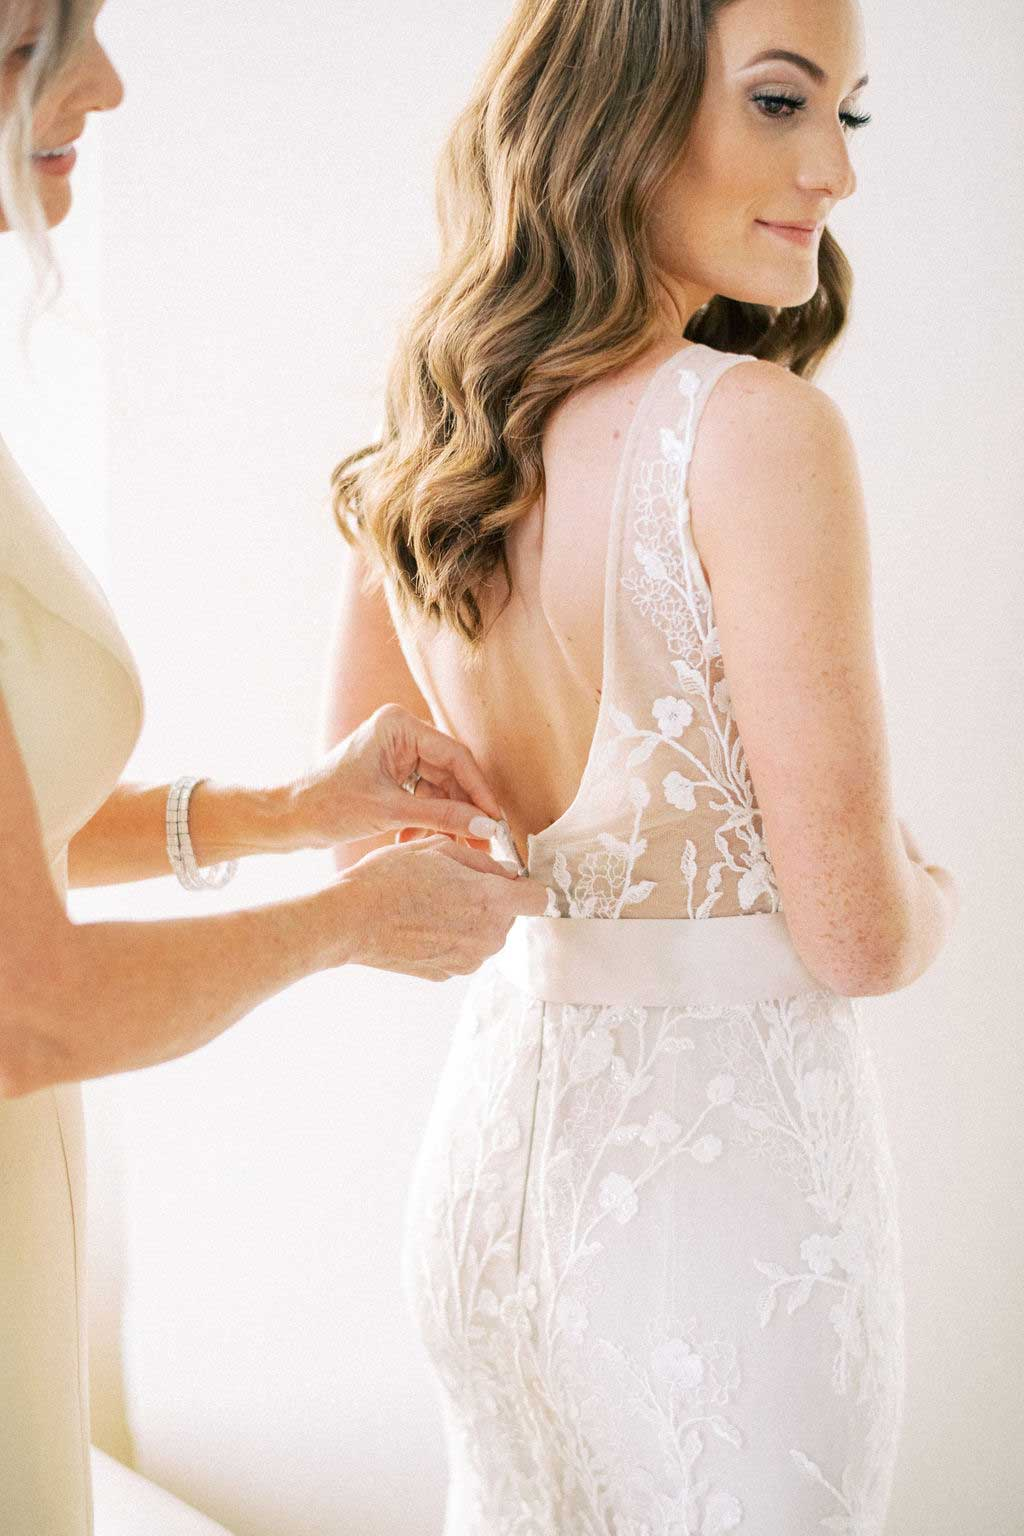 mother of the bride helps bride button her wedding dress.